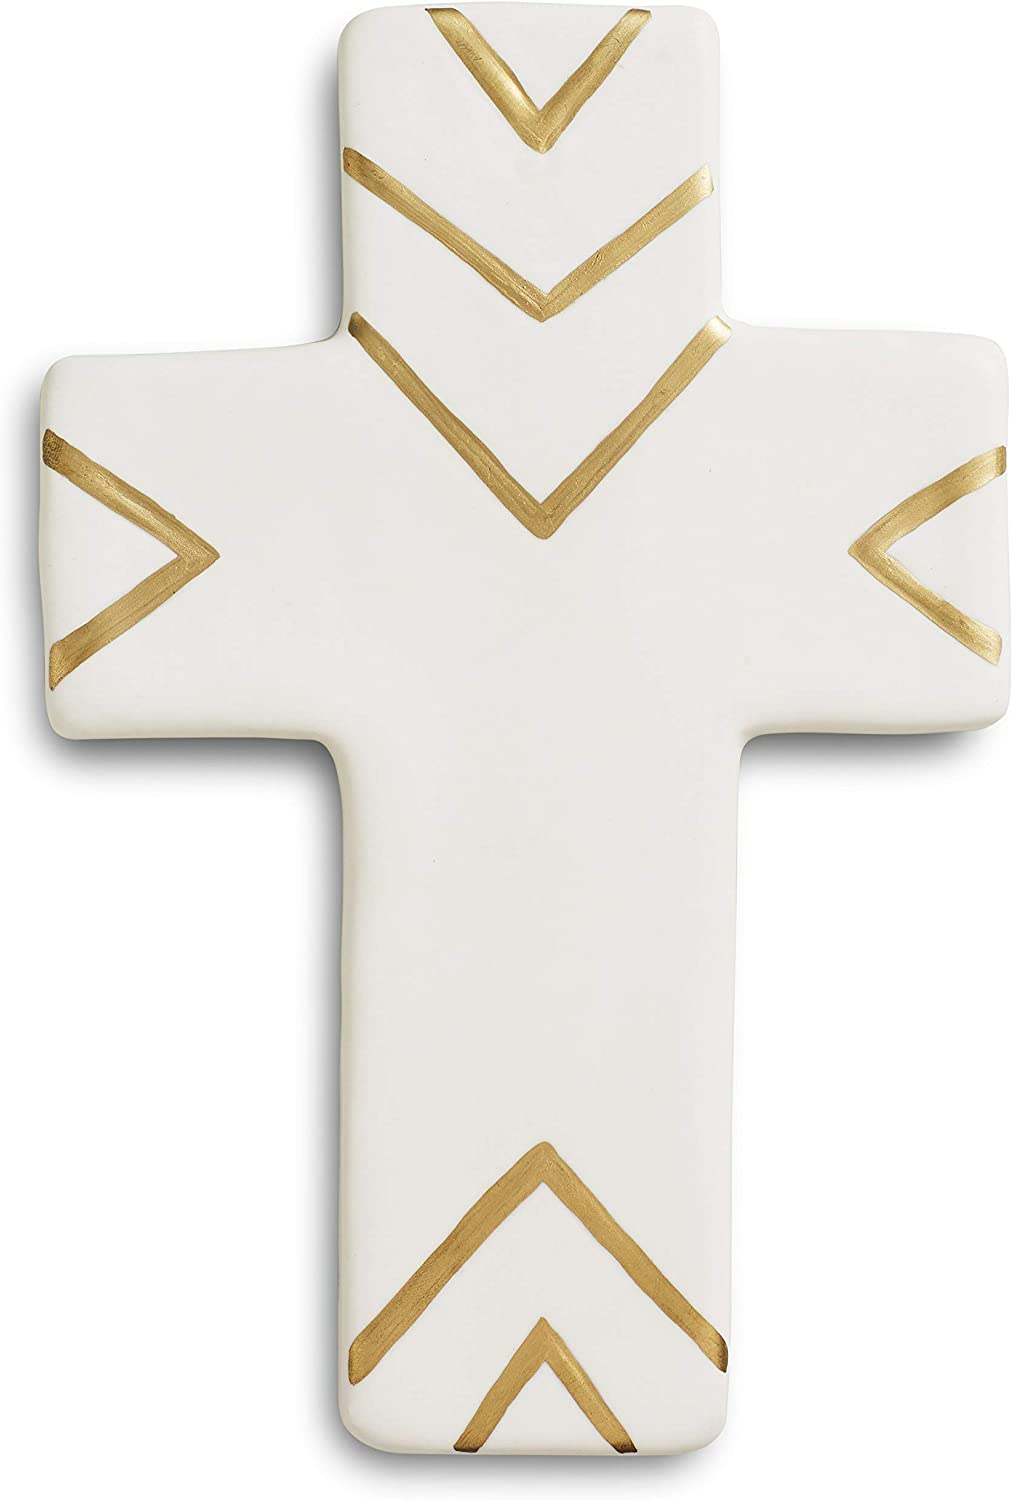 Decorative Hand Painted Contemporary Ceramic Hanging Wall Cross. White & Gold Christian Cross Wall Decor In Modern Style. Perfect Cross For Wall Decorations, Religious Home Decor, Gift Idea For Birthdays, Easter, Christmas, Weddings or Any Occasion.